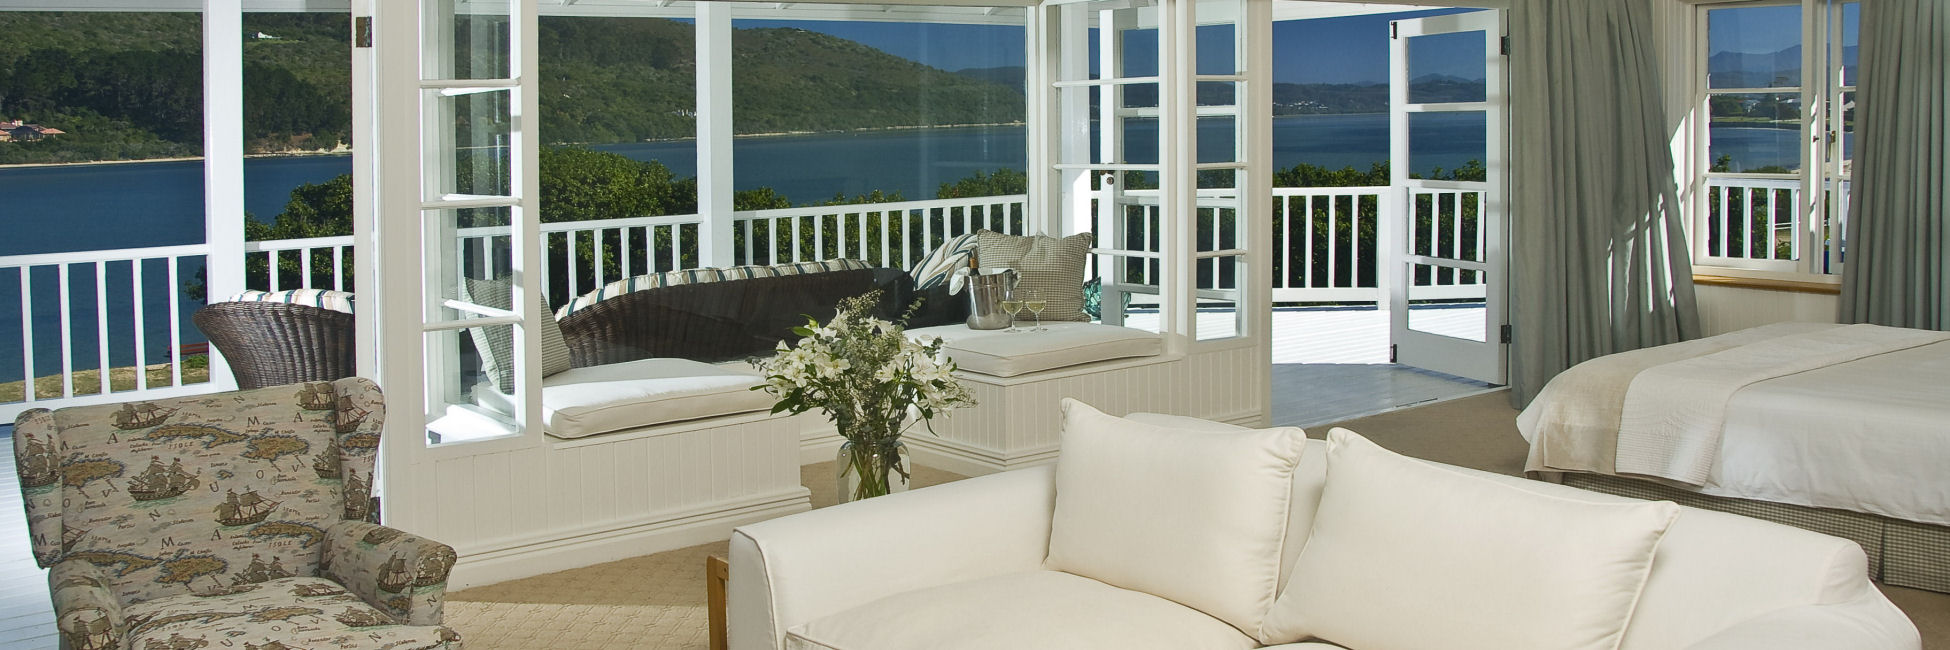 The Knysna Belle Island Guest House